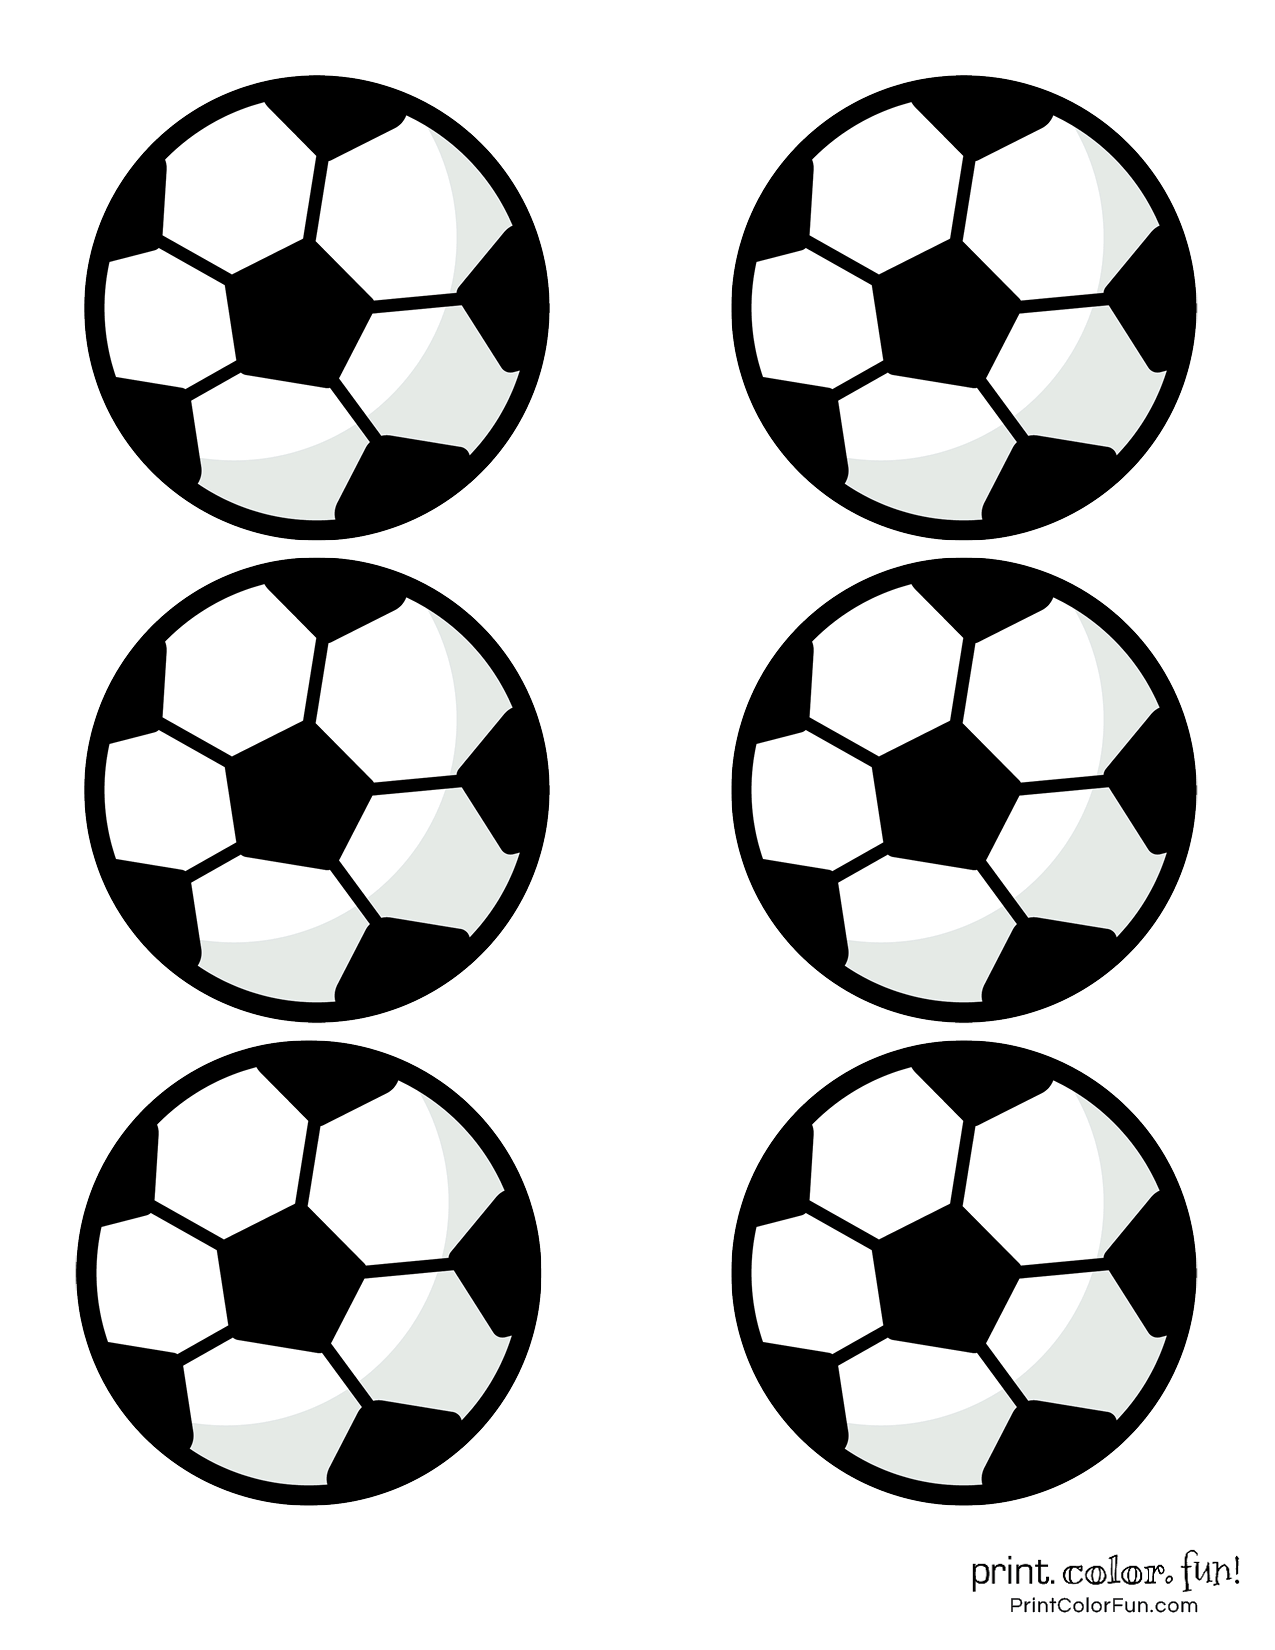 colouring pages of ball ball coloring pages for kids to print for free of pages colouring ball